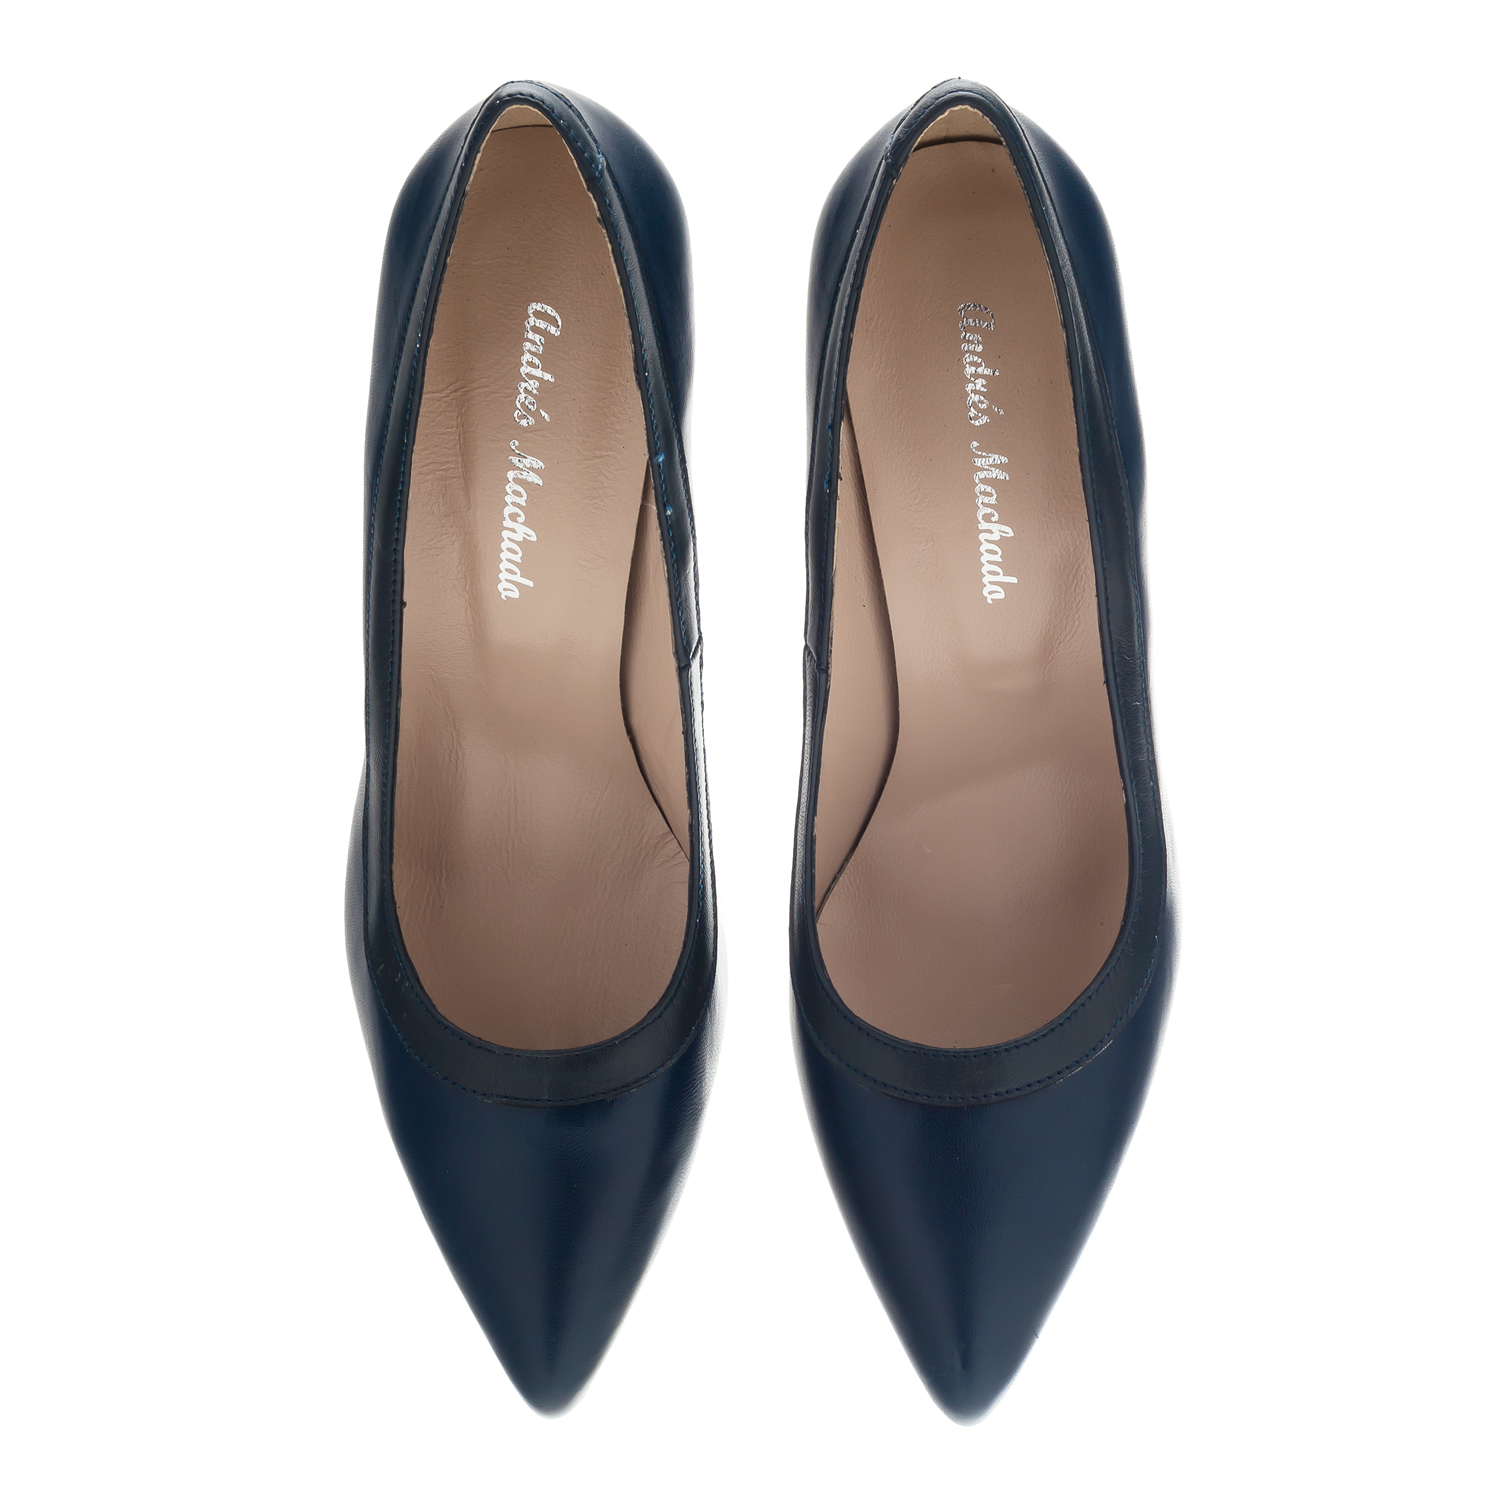 Pumps aus marineblauem Leder - MADE in SPAIN -